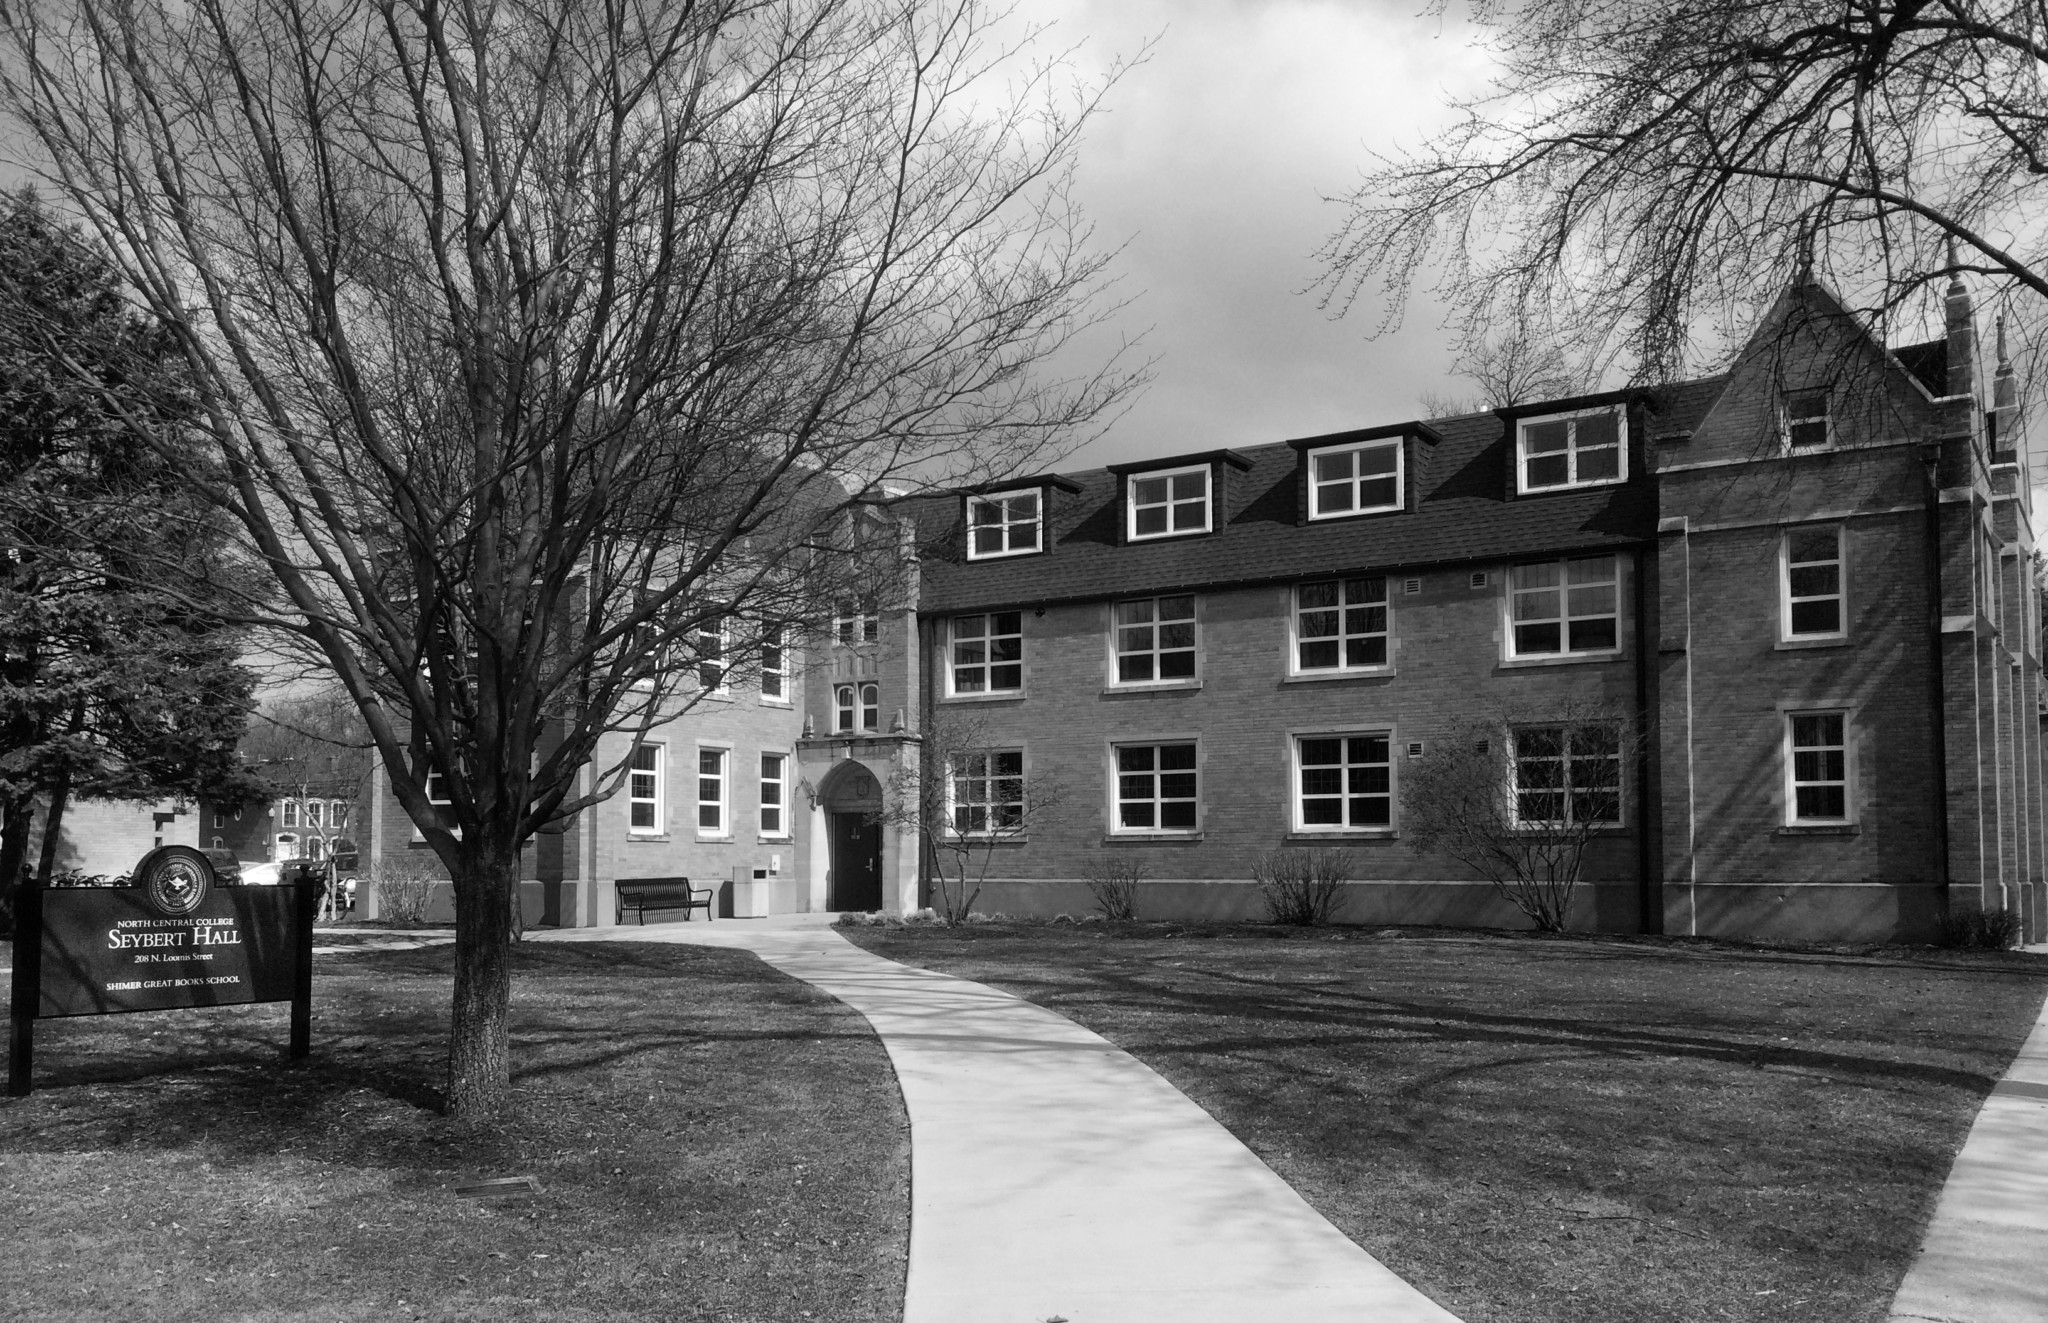 Seybert Hall, the current home of Shimer's administrative functions at North Central College (Sarah Fineman)